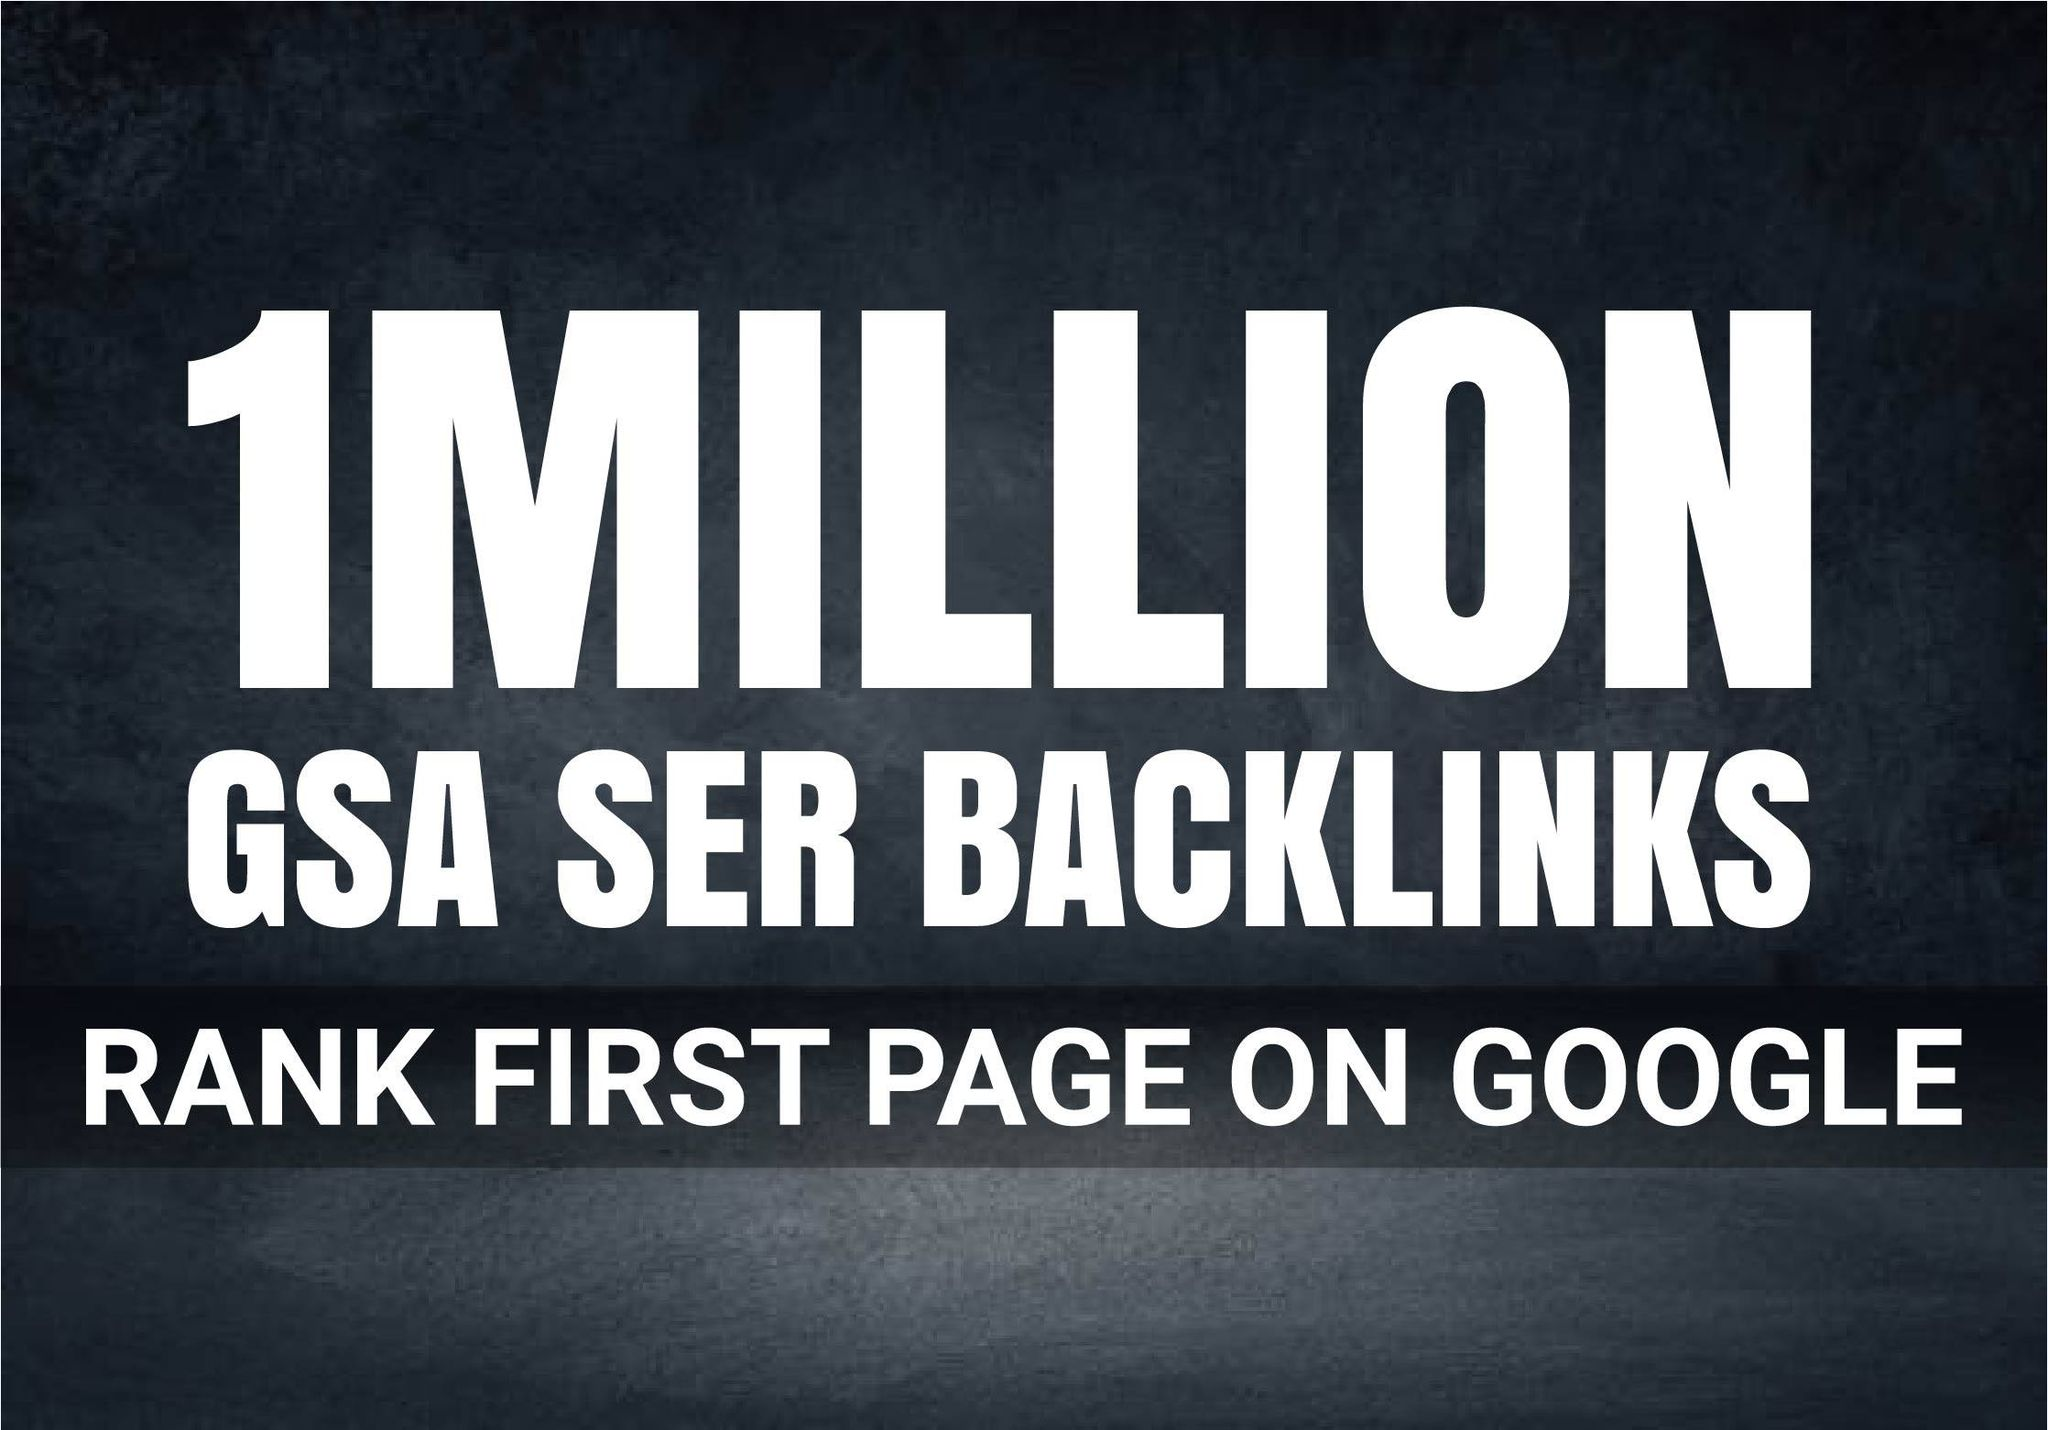 I will provide 1M GSA Ser Backlinks Verified Quality